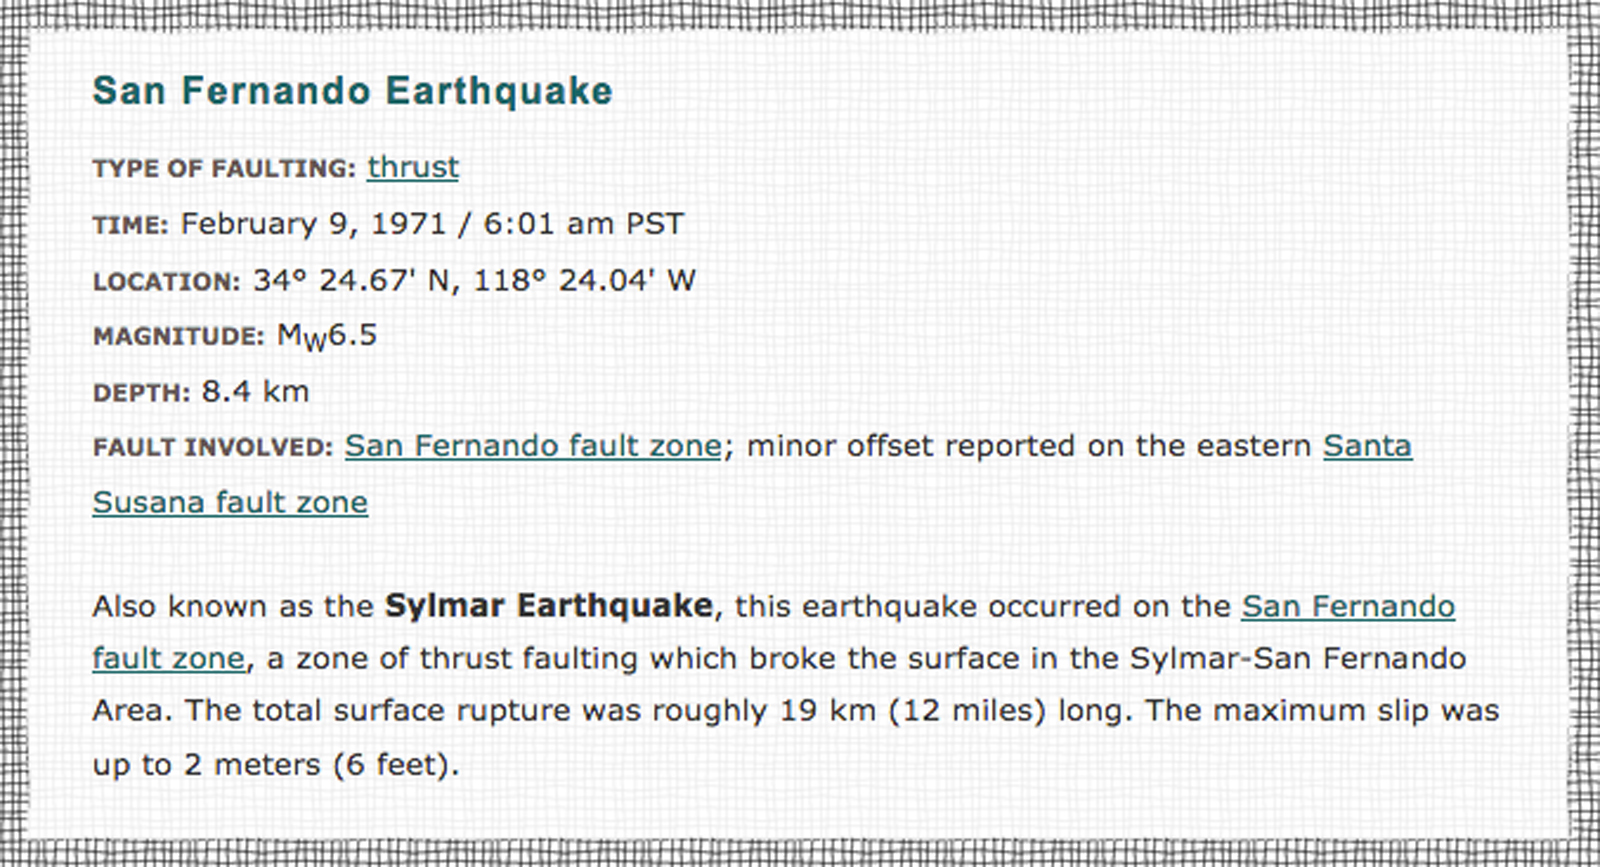 San Fernando Earthquake